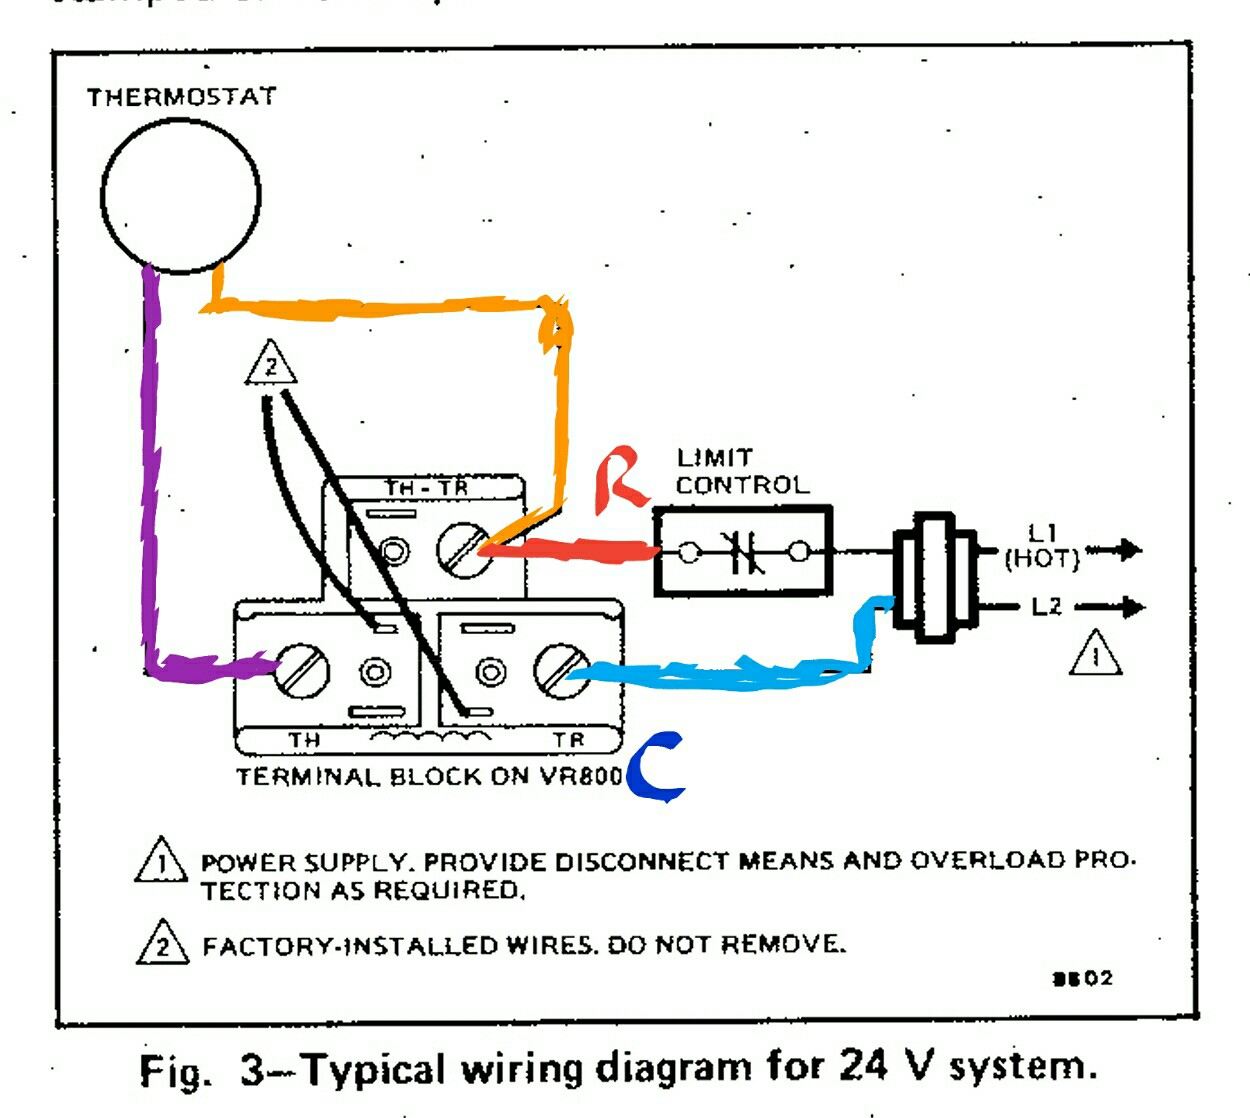 thermostat wiring diagram bryant heat pump typical